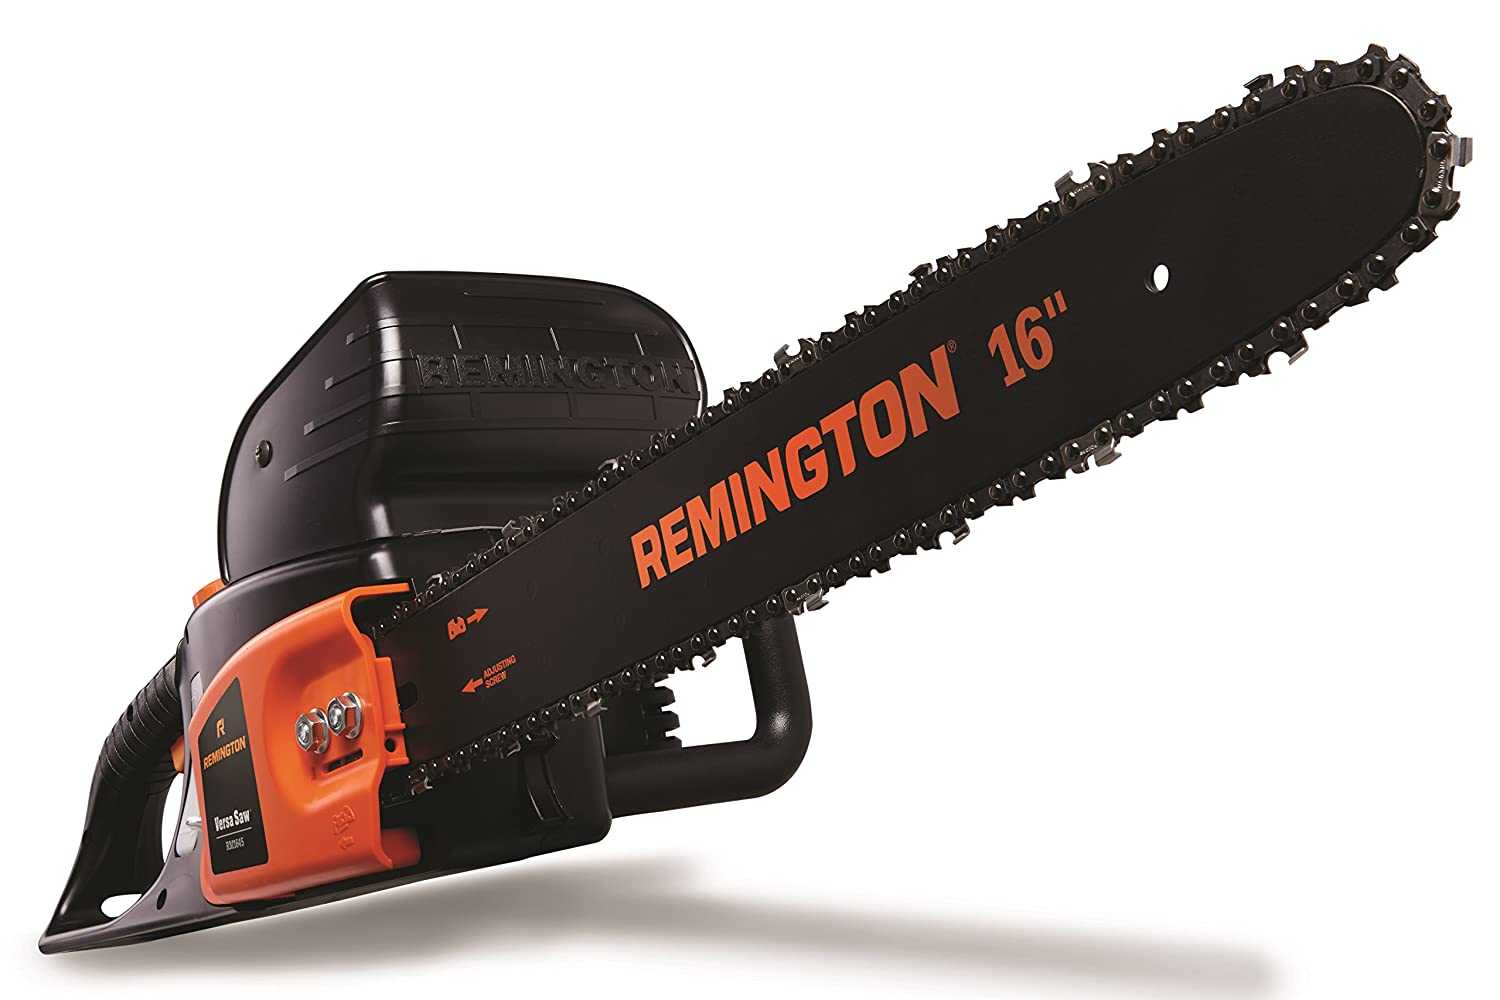 Amazon remington rm1645 versa saw 12 amp 16 inch electric amazon remington rm1645 versa saw 12 amp 16 inch electric chainsaw power chain saws garden outdoor greentooth Images